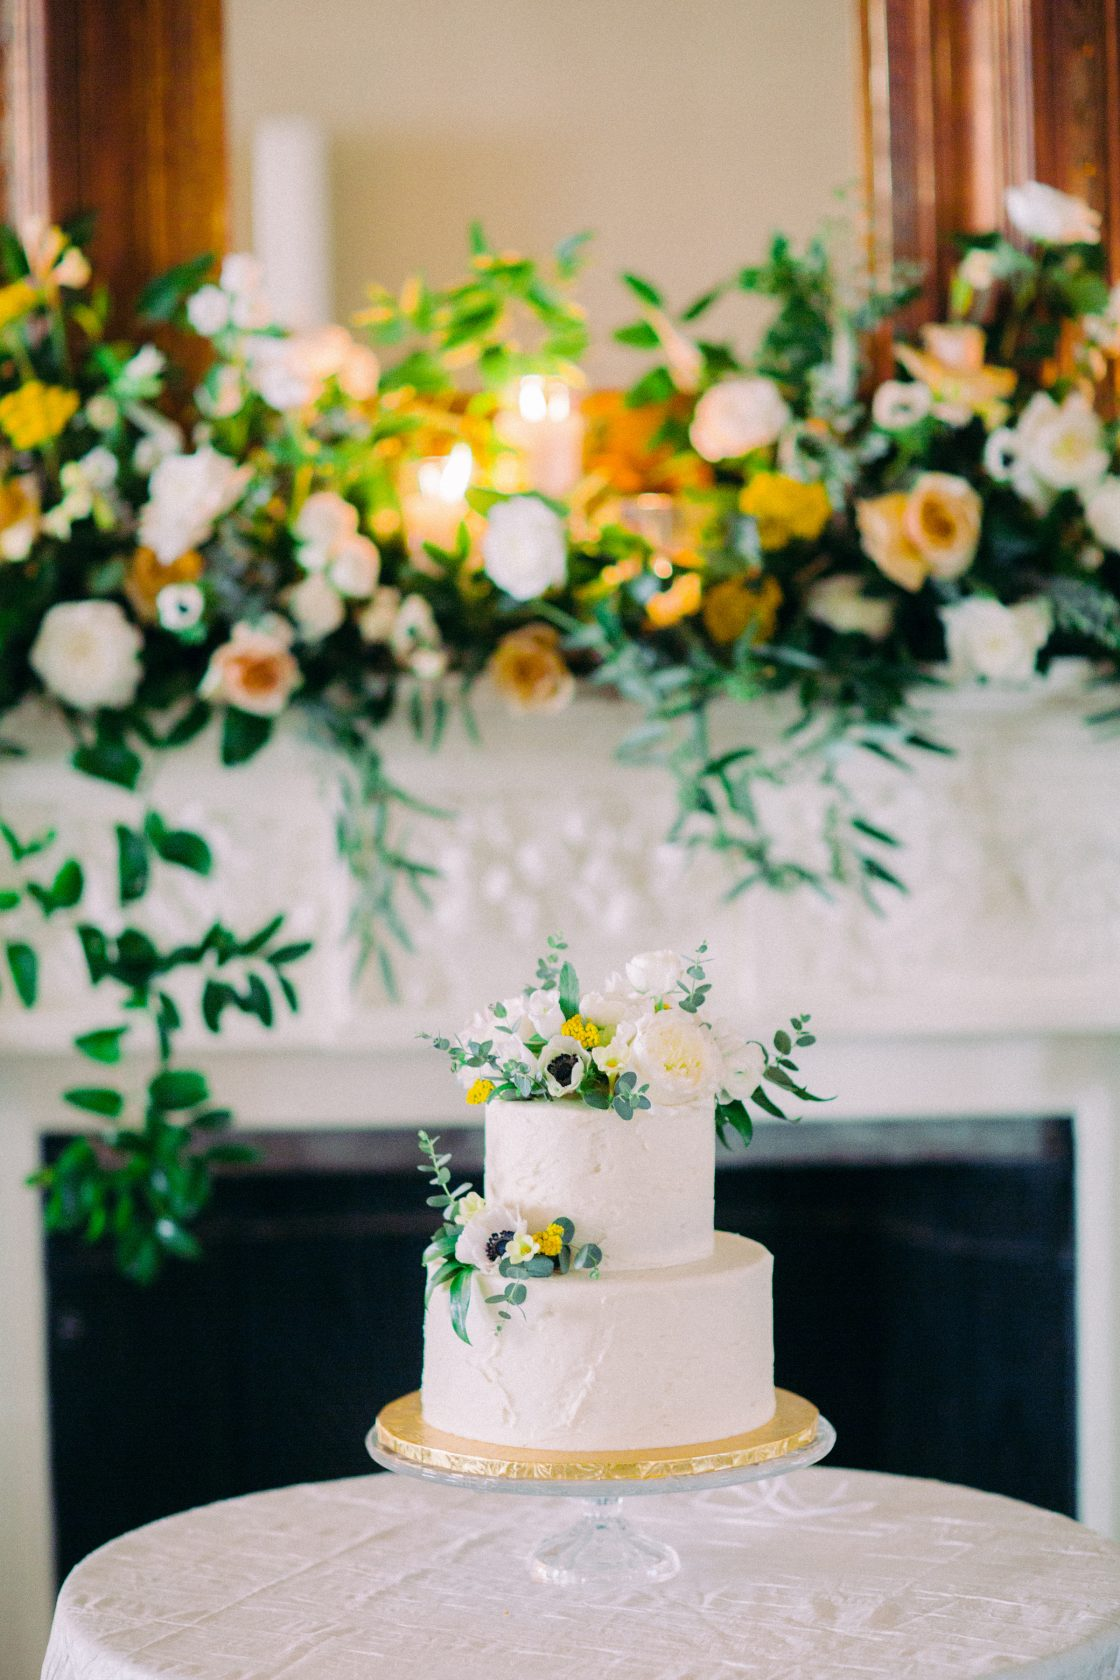 Petite Wedding Cake with Yellow Flowers